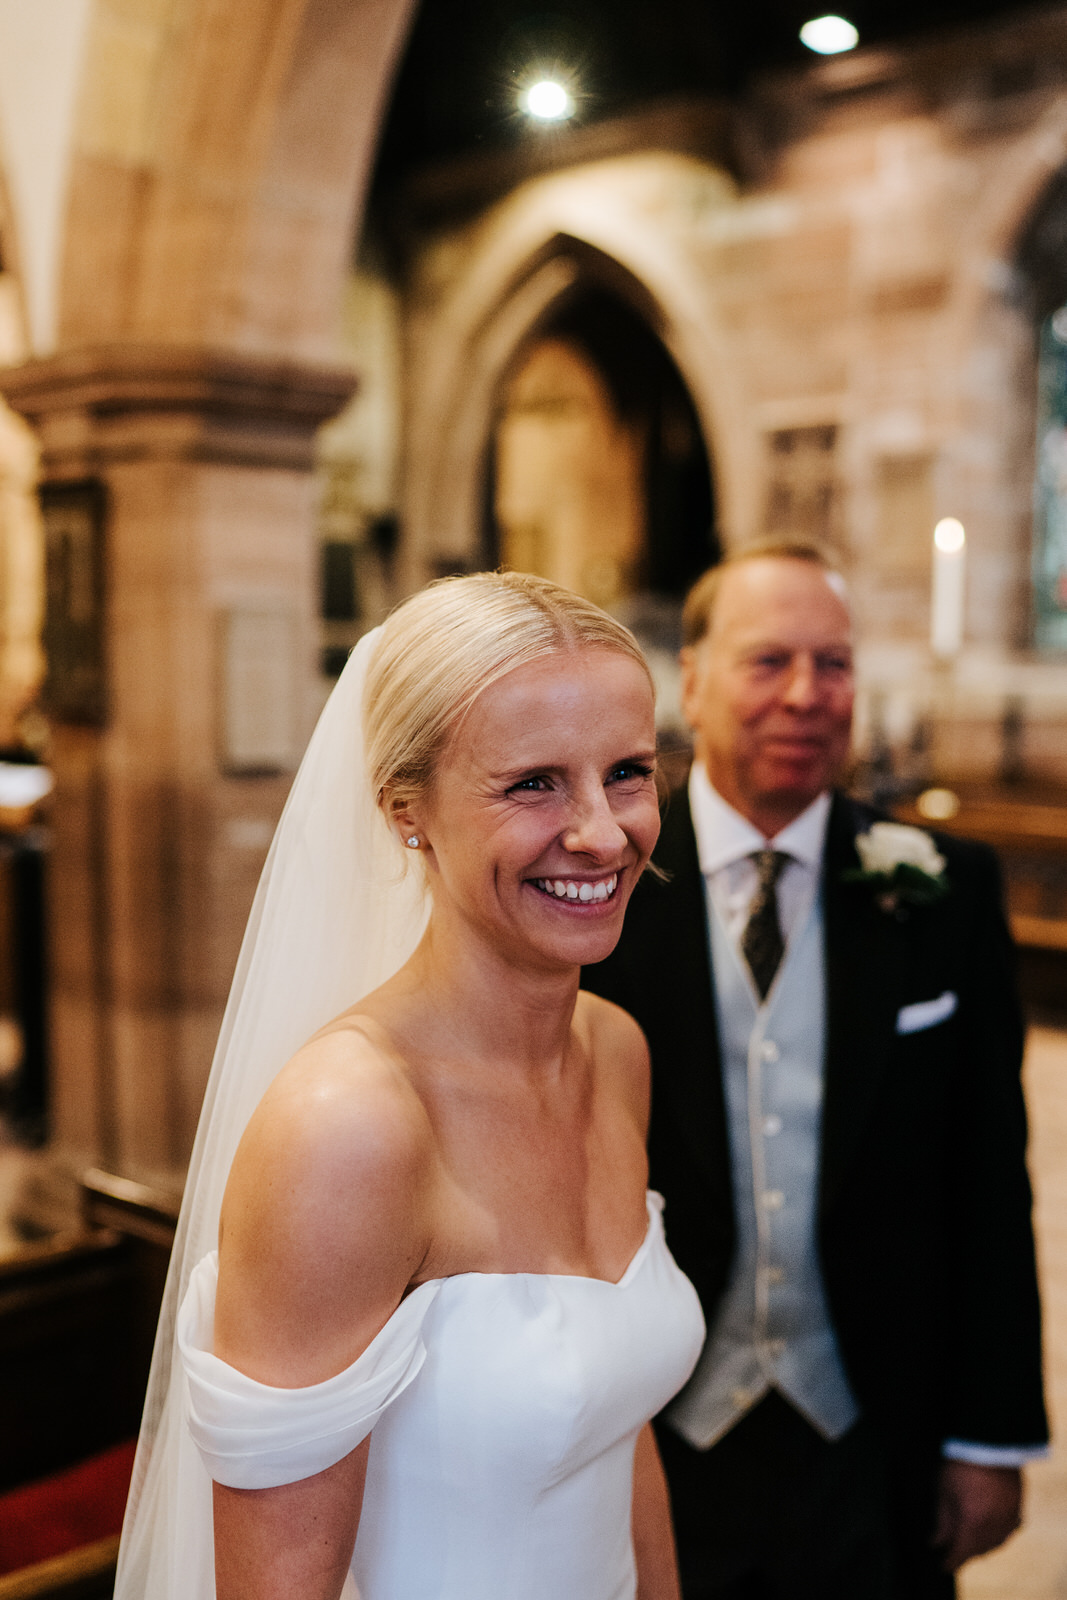 Bride smiles at someone off-camera